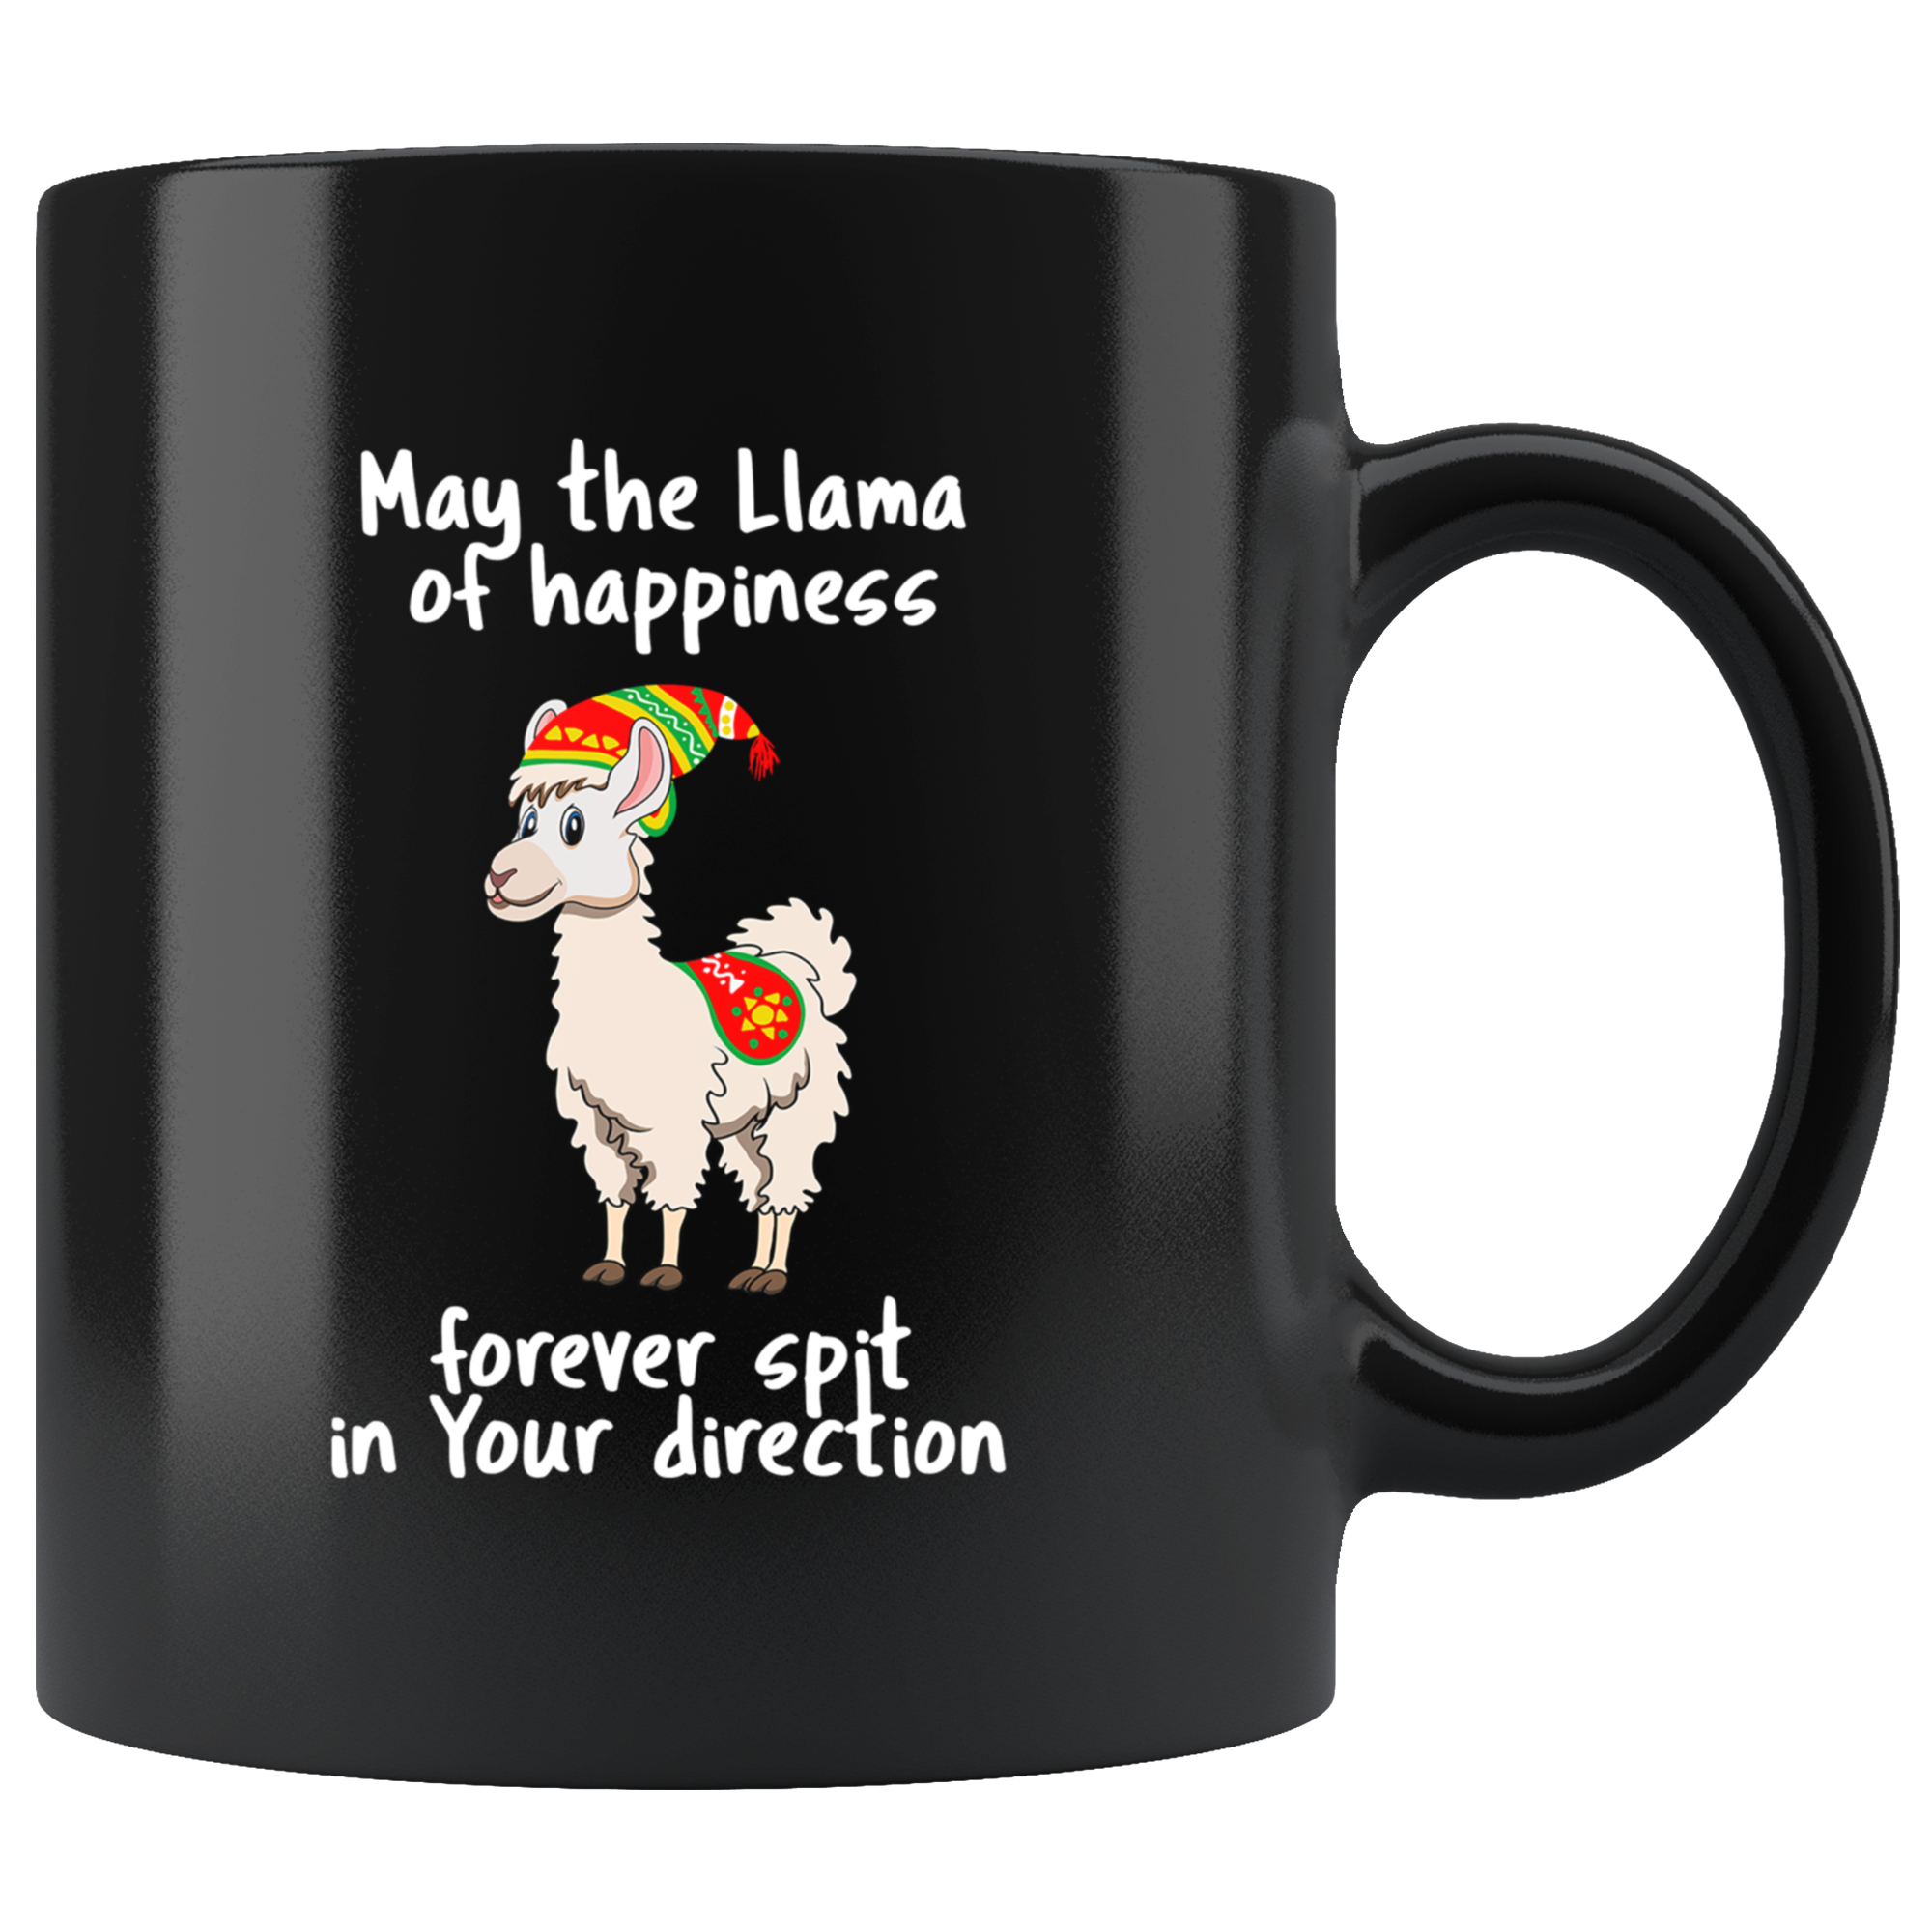 Llama saying png. Spit happens quote in